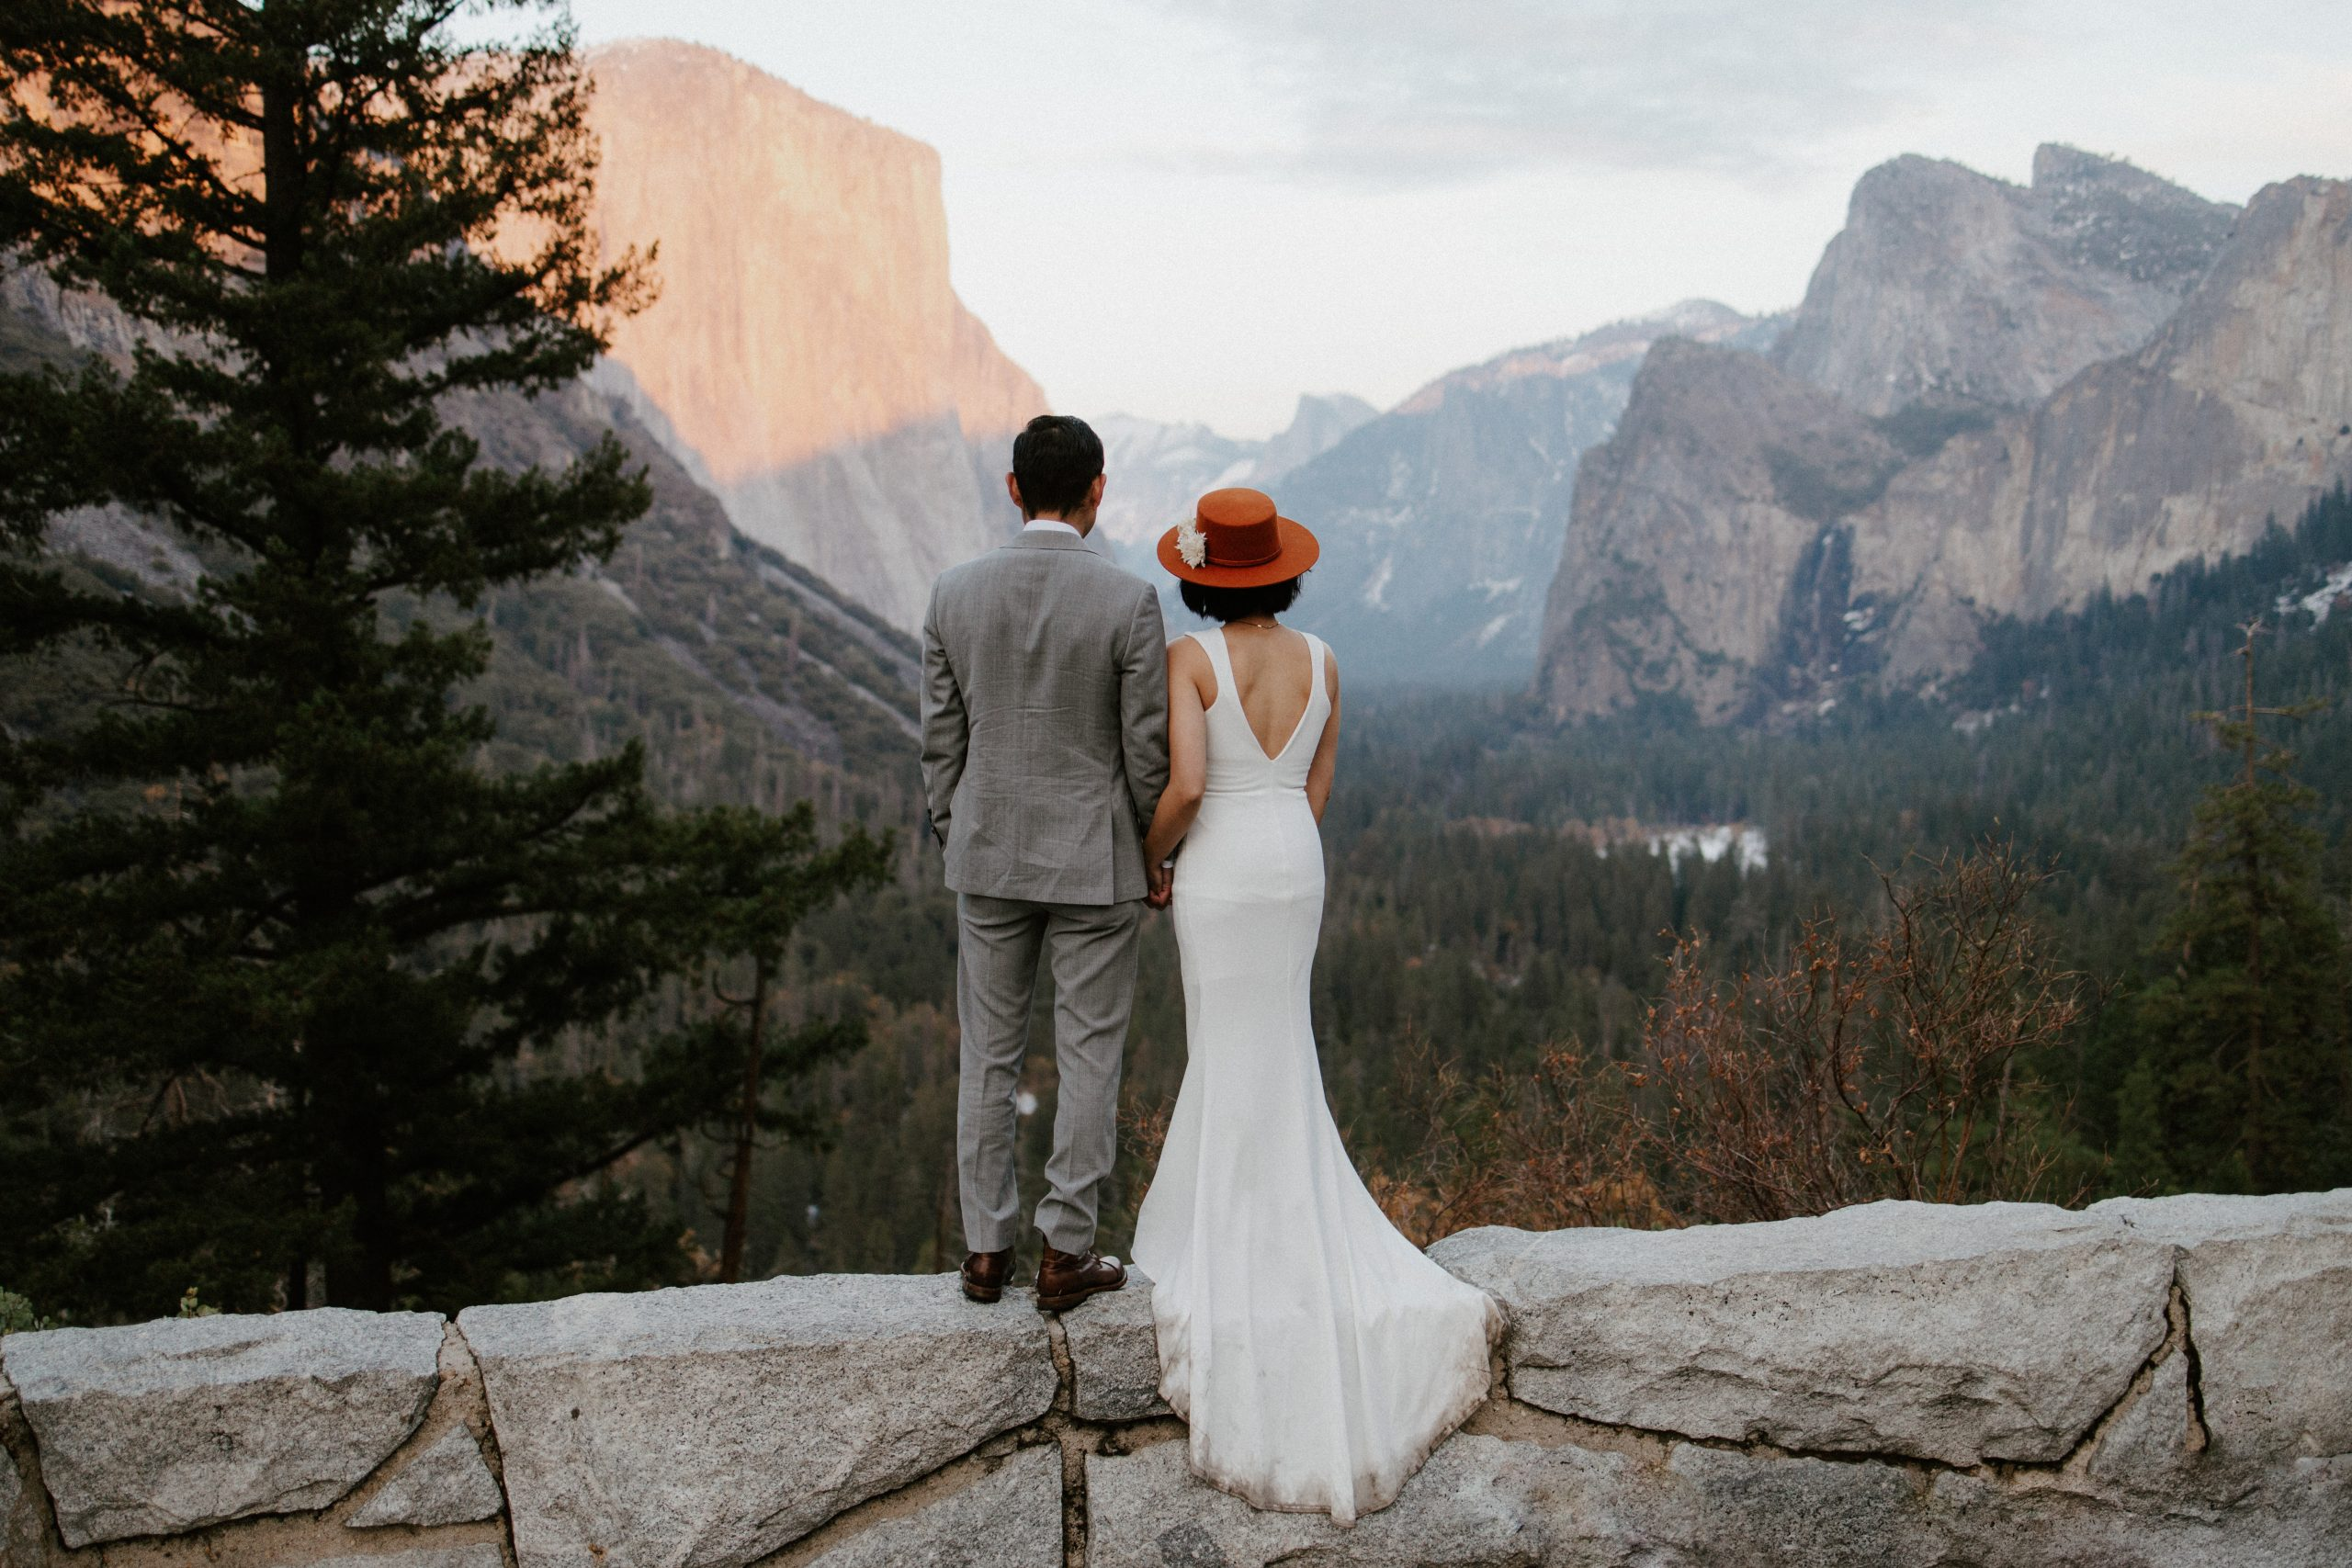 Looking out at the valley view in Yosemite National Park during an elopement